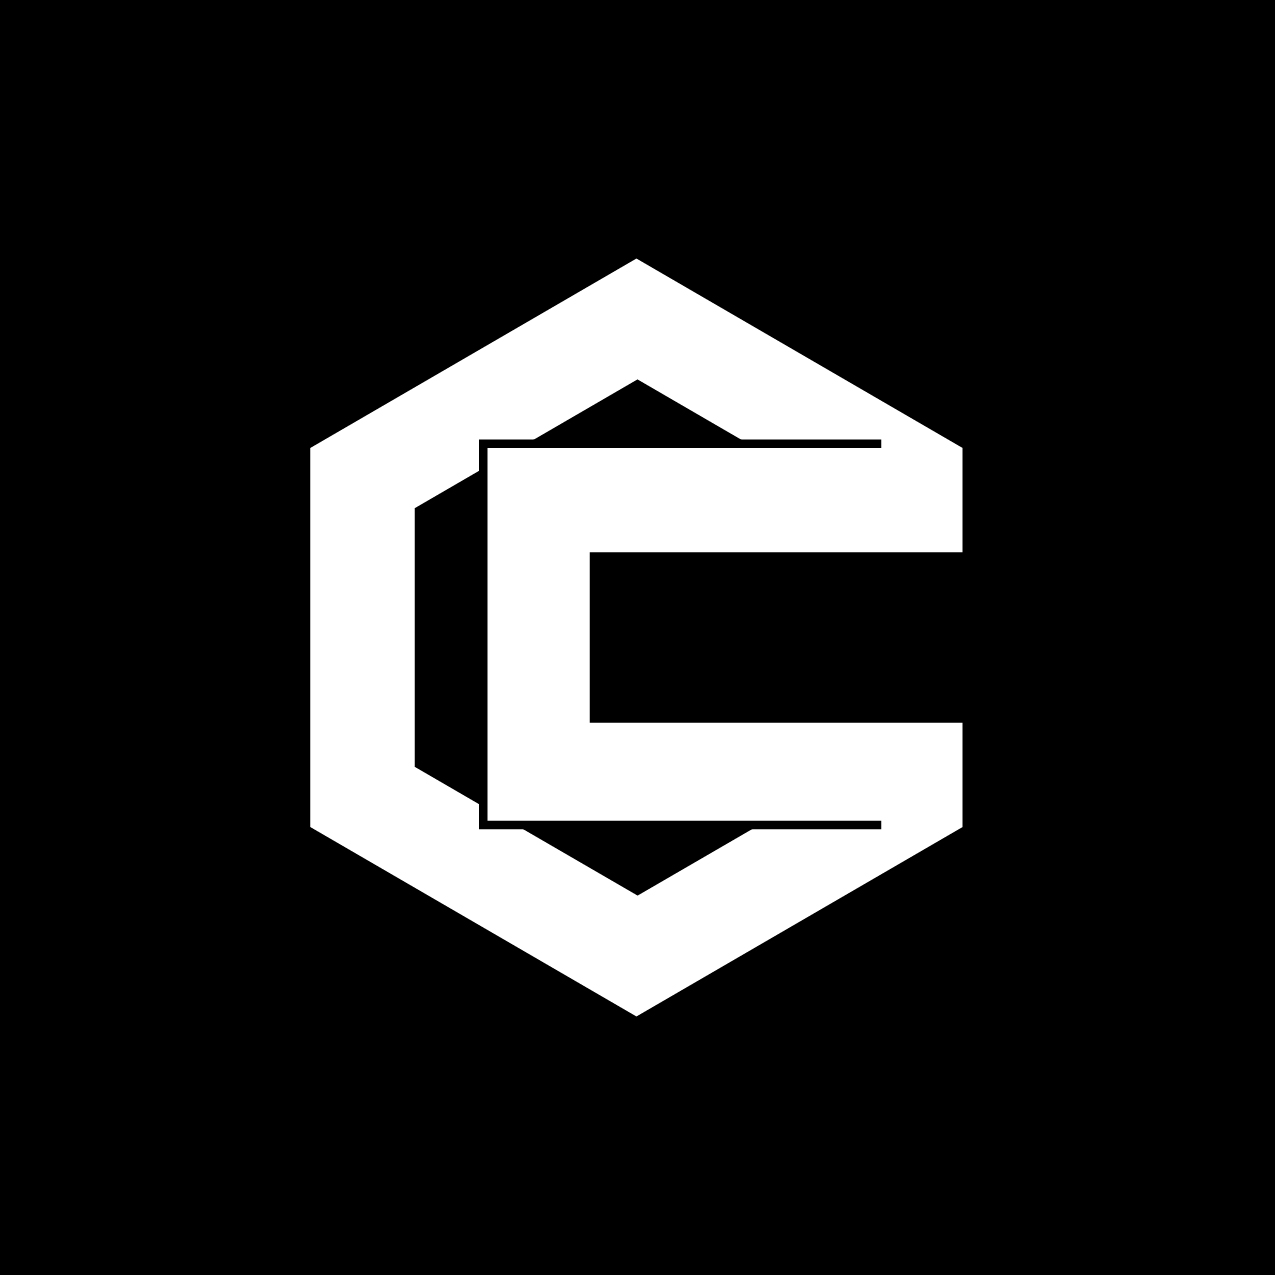 Letter C5 design by Furia